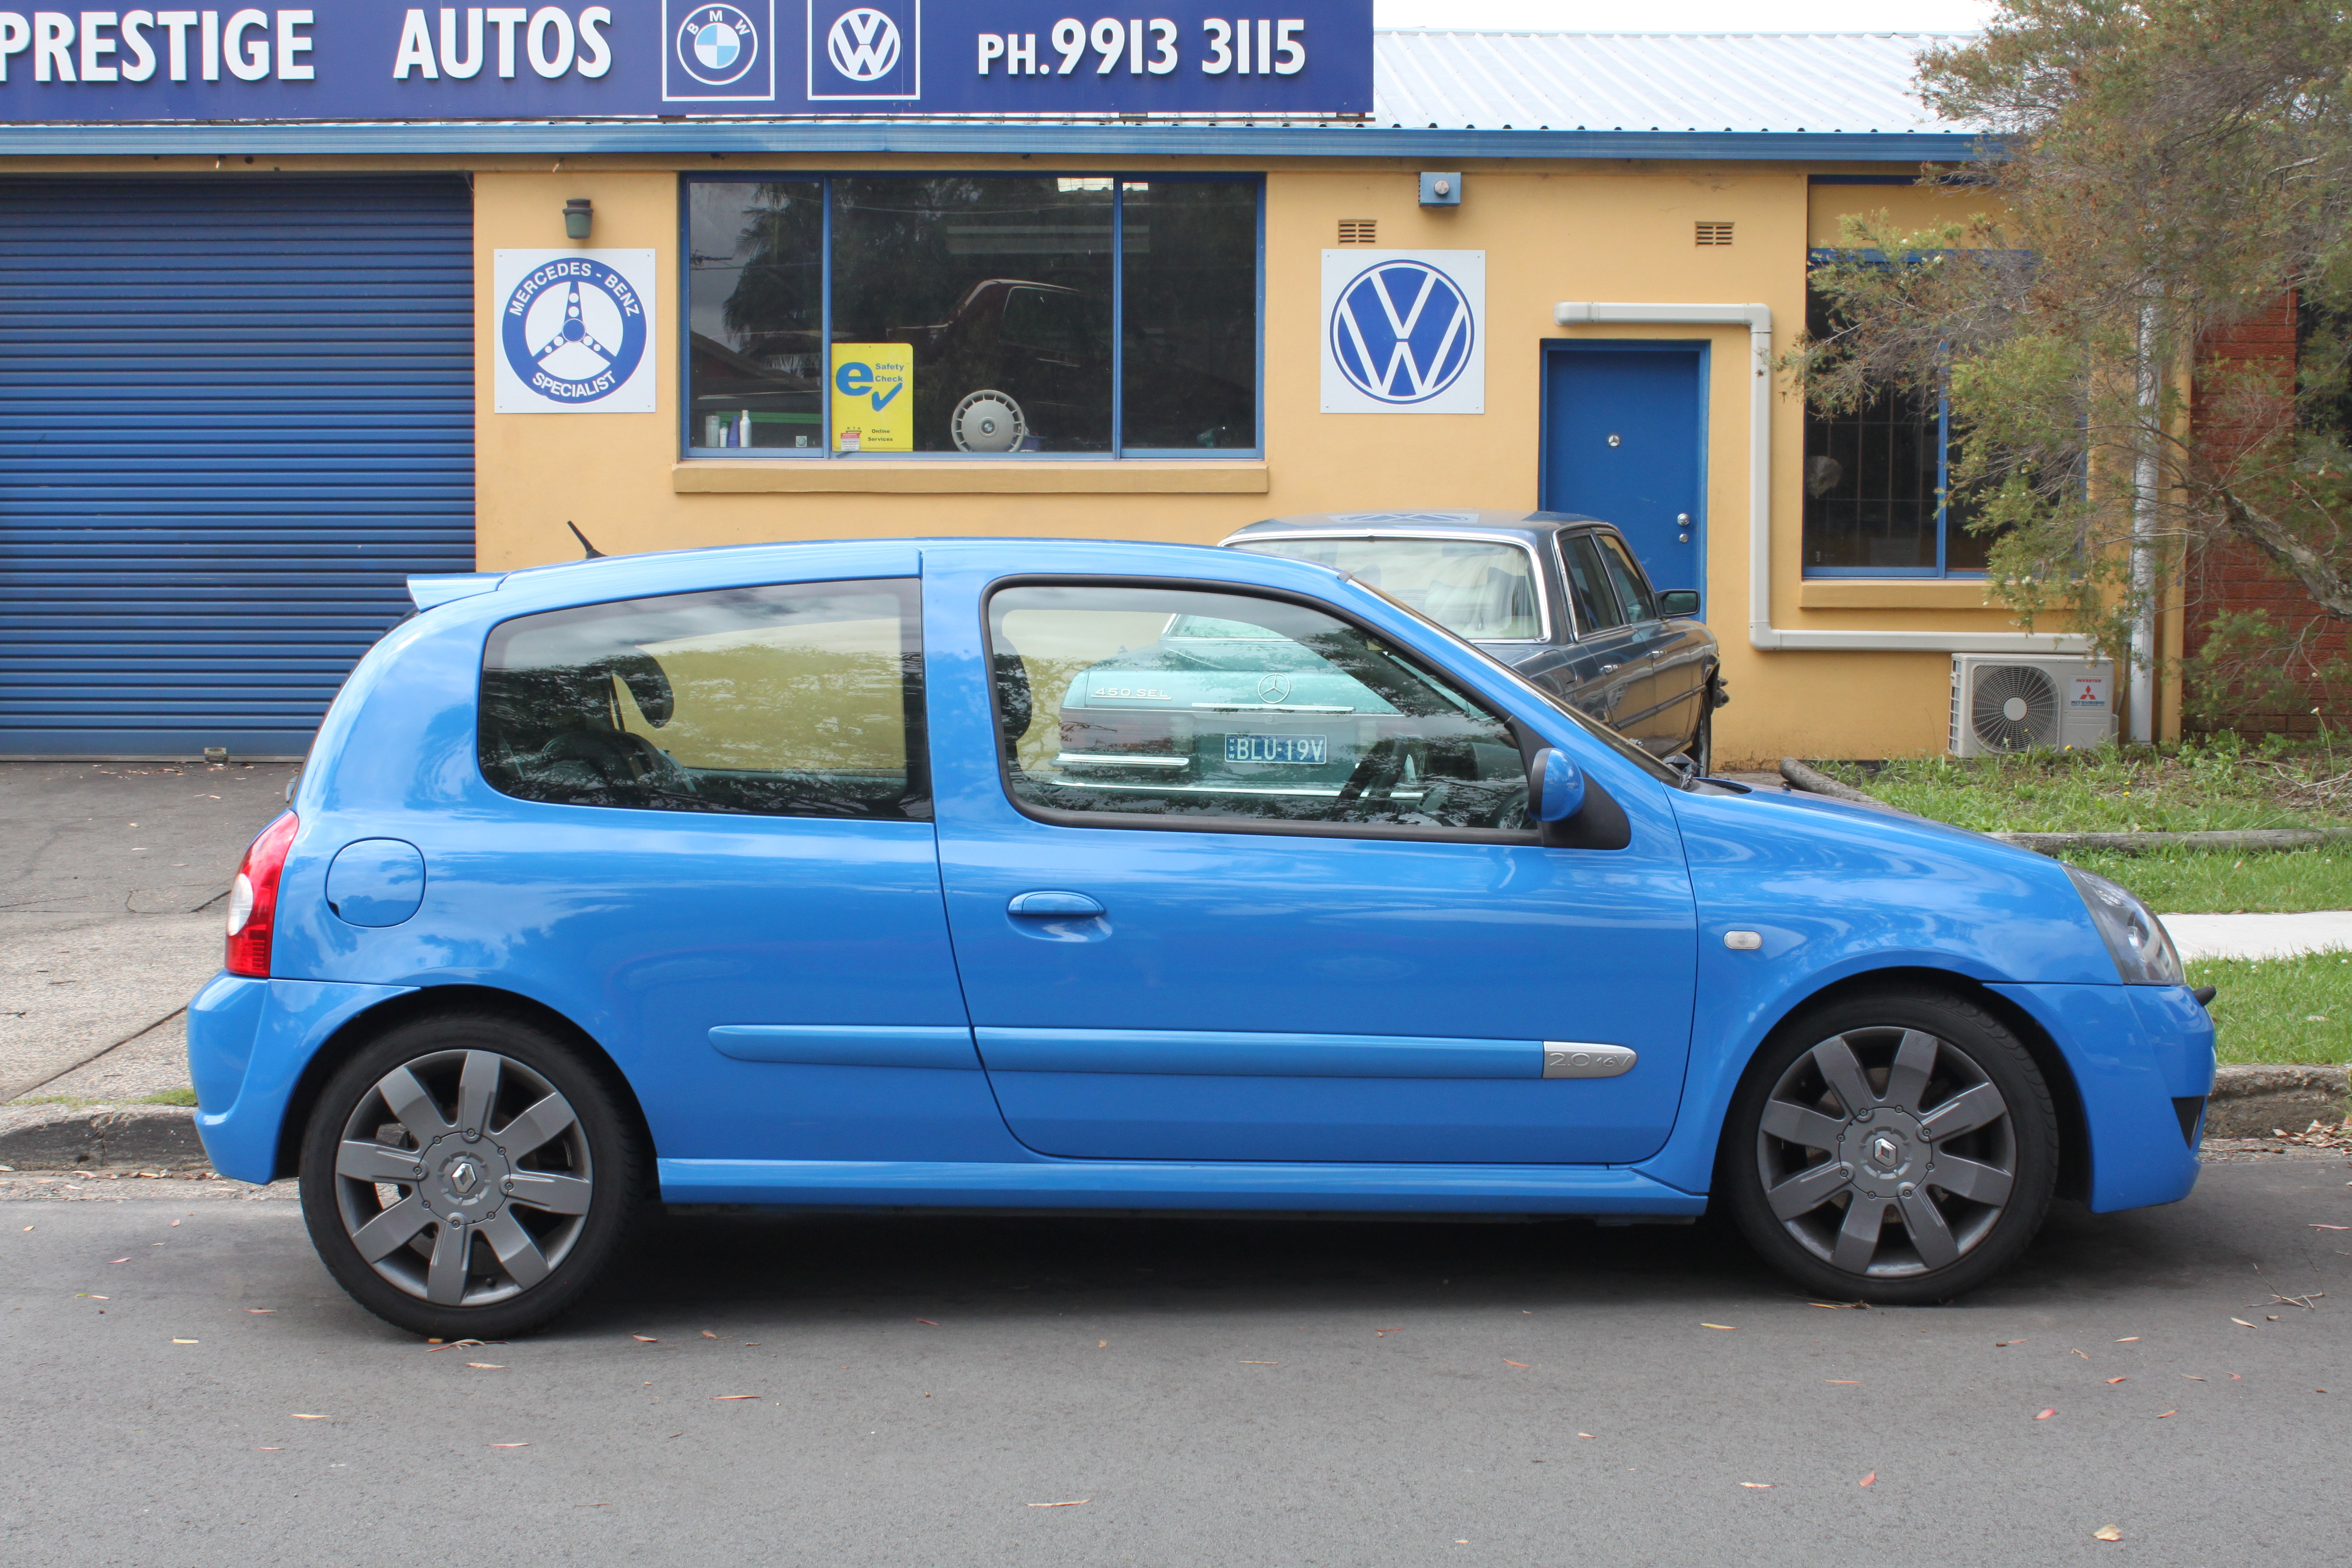 File 2005 Renault Sport Clio X65 Phase 3 182 Cup 3 Door Hatchback 23202018155 Jpg Wikimedia Commons